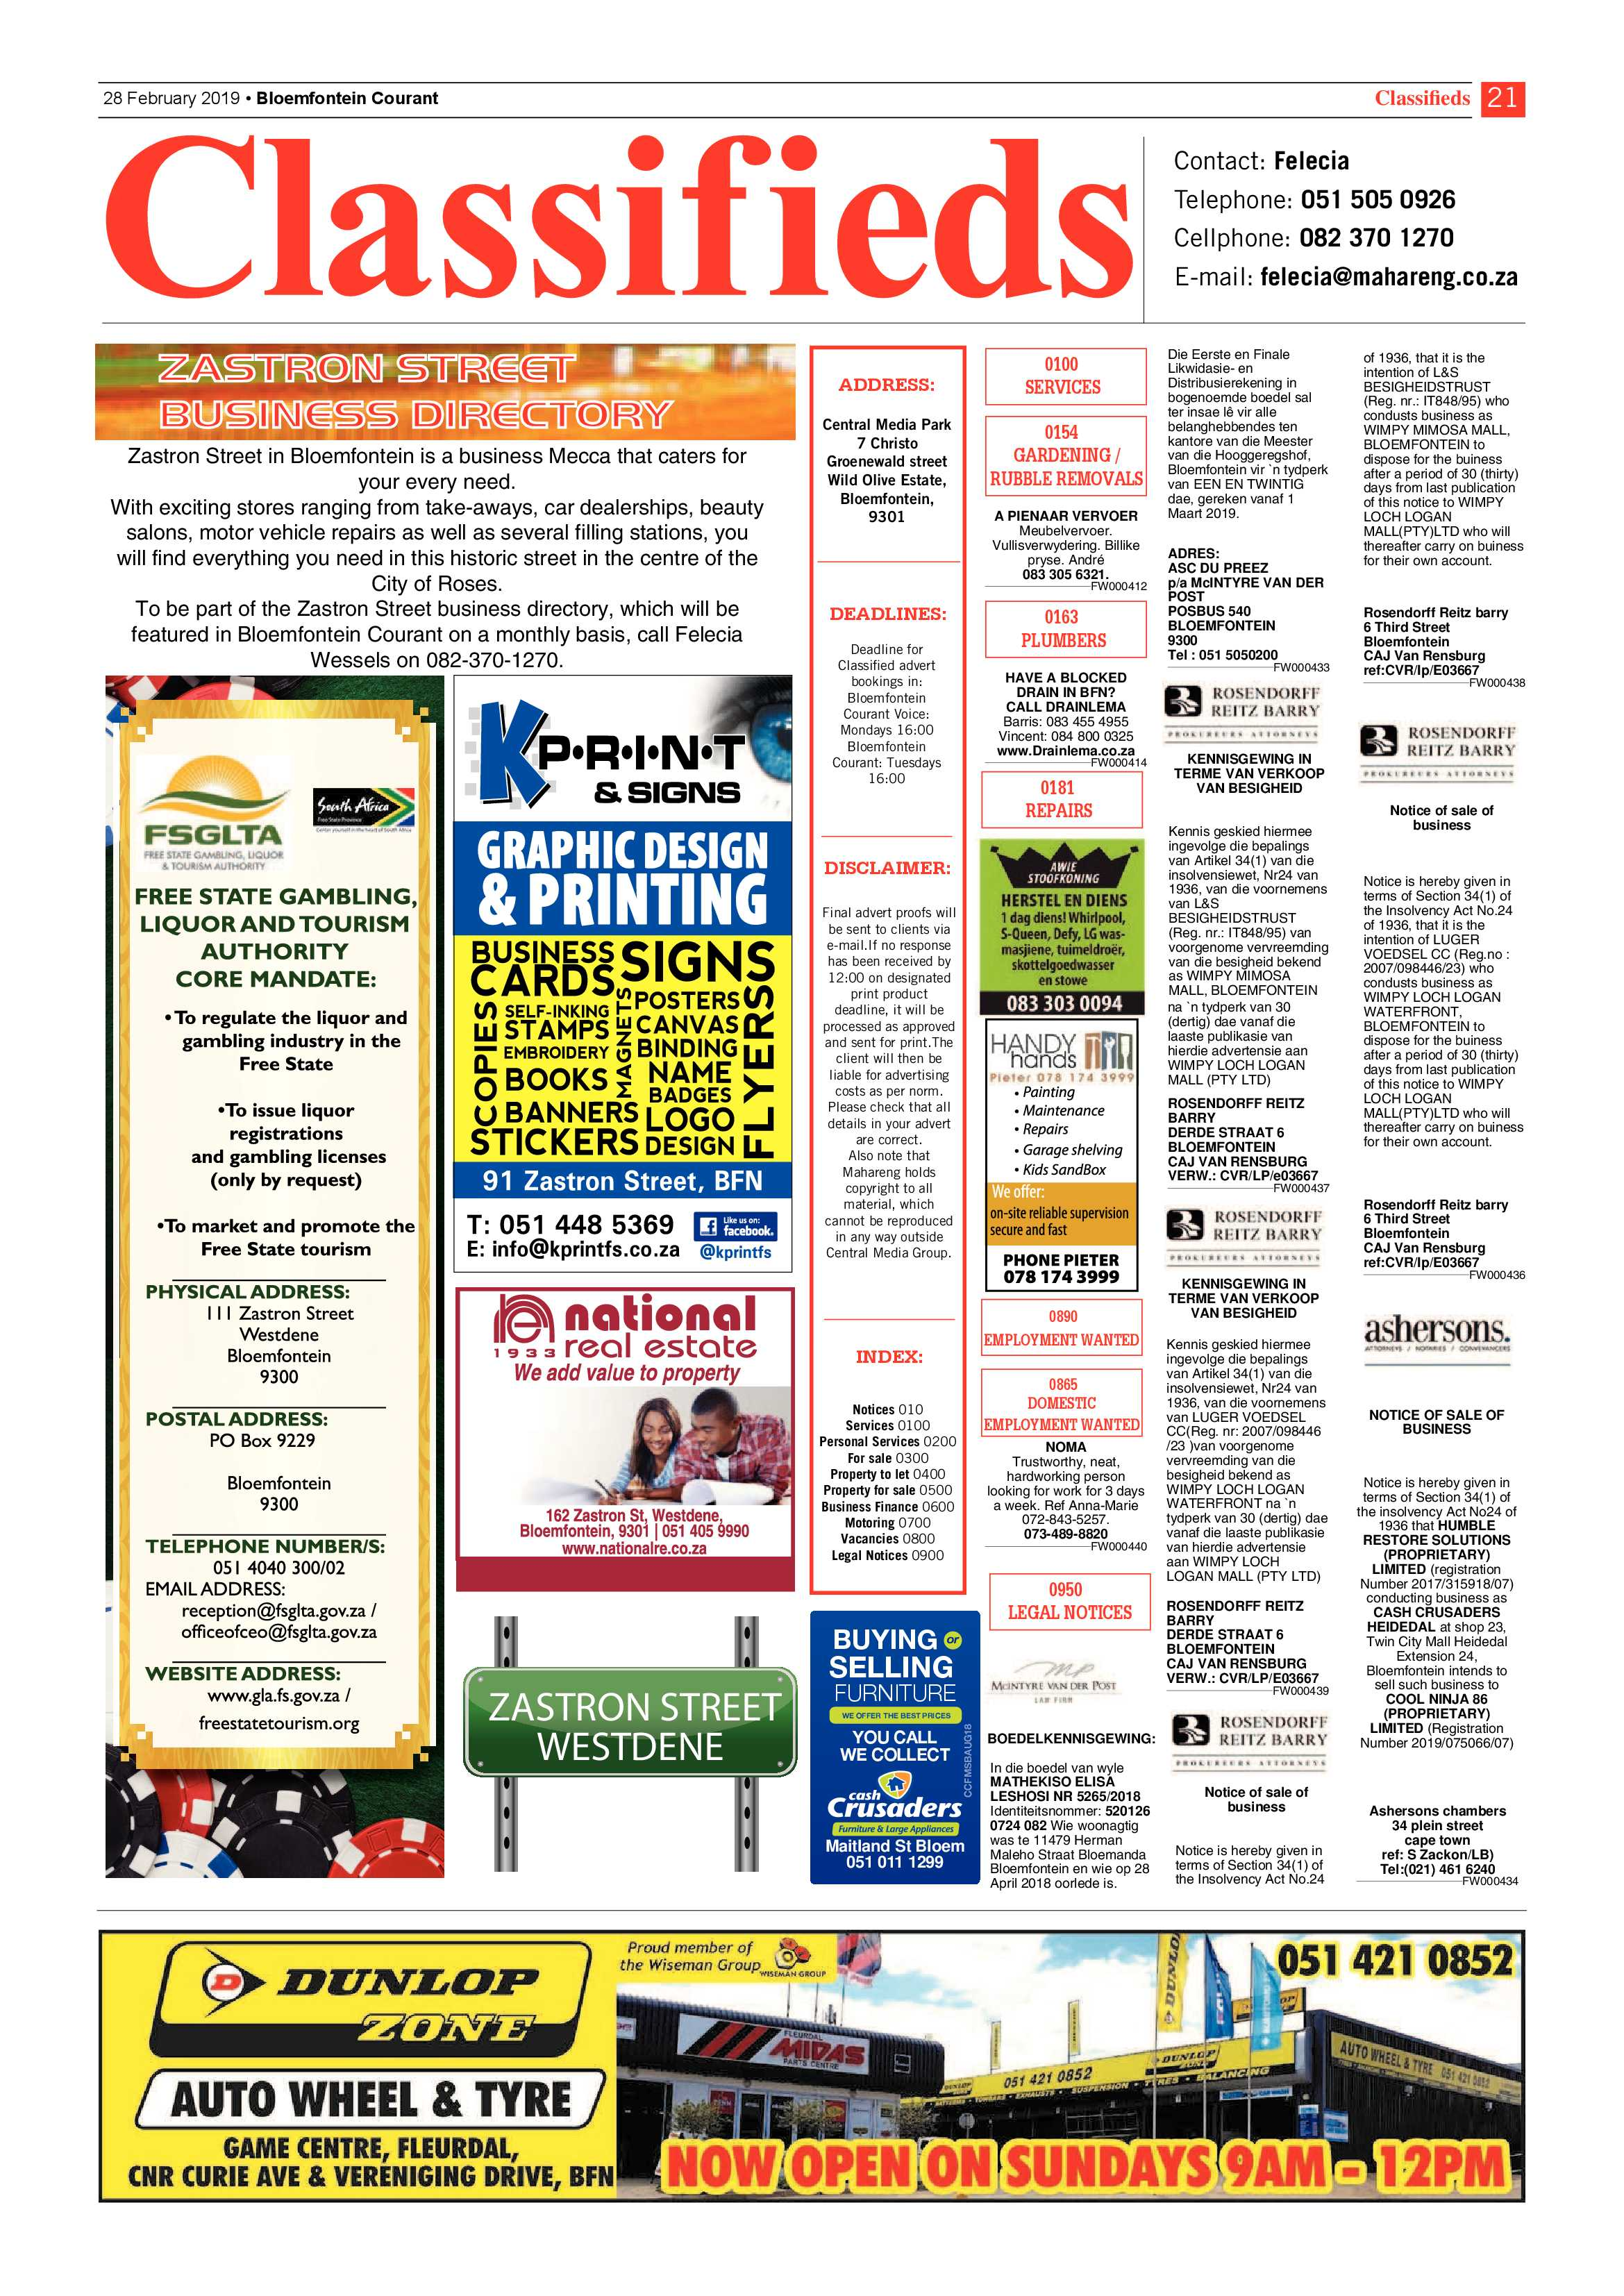 courant-28-february-2019-epapers-page-21